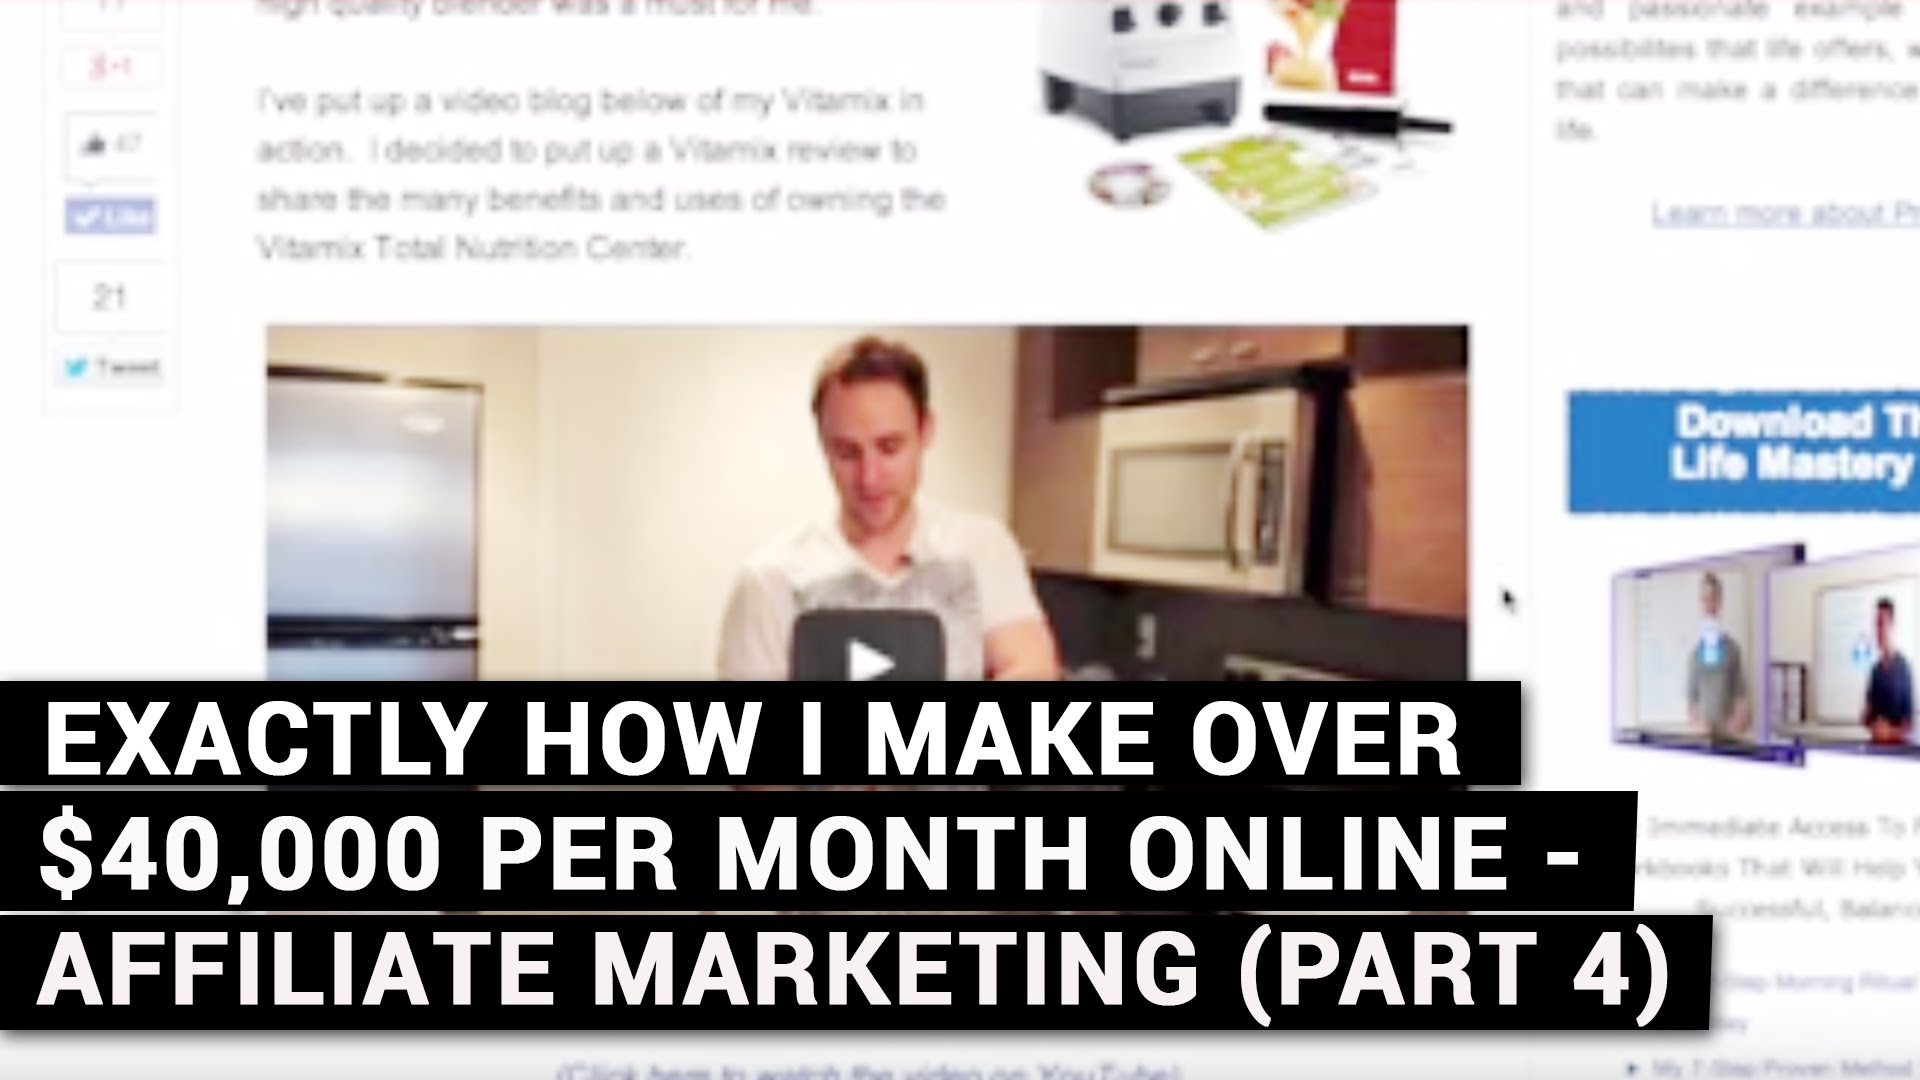 Exactly How I Make Over $40,000 Per Month Online - Affiliate Marketing (Part 4)